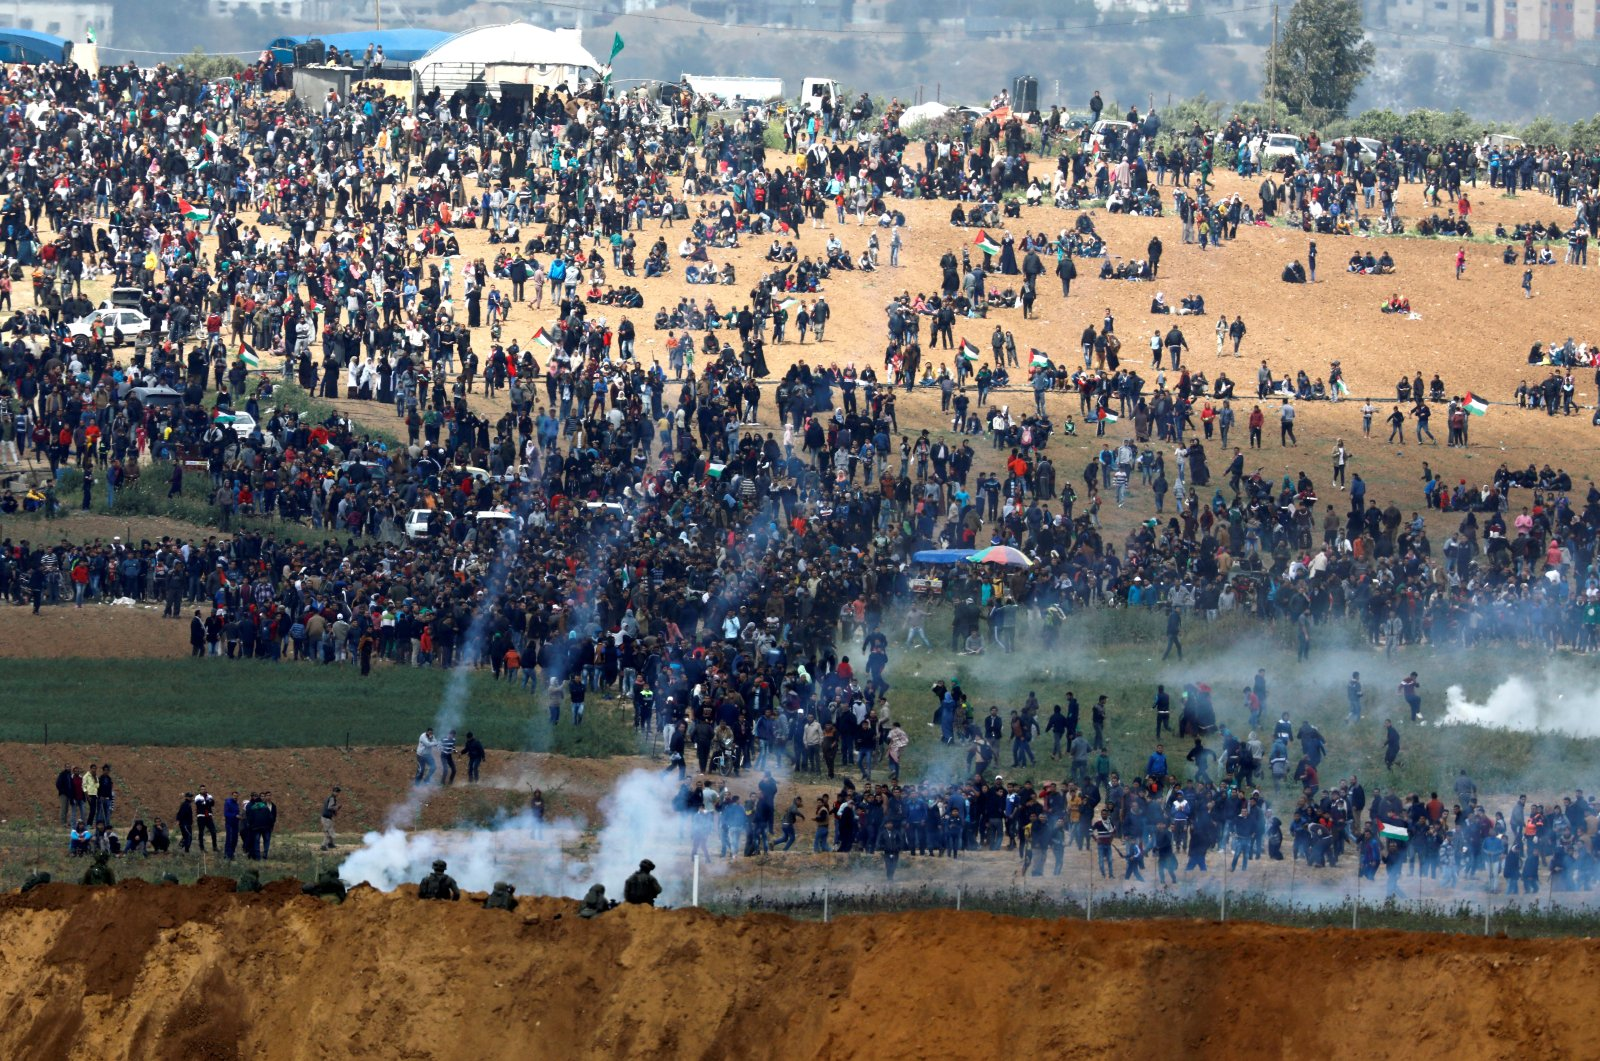 Israeli soldiers shoot tear gas from the Israeli side of the Israel-Gaza border, as Palestinians protest on the Gaza side of the border, March 30, 2018. (Reuters File Photo)